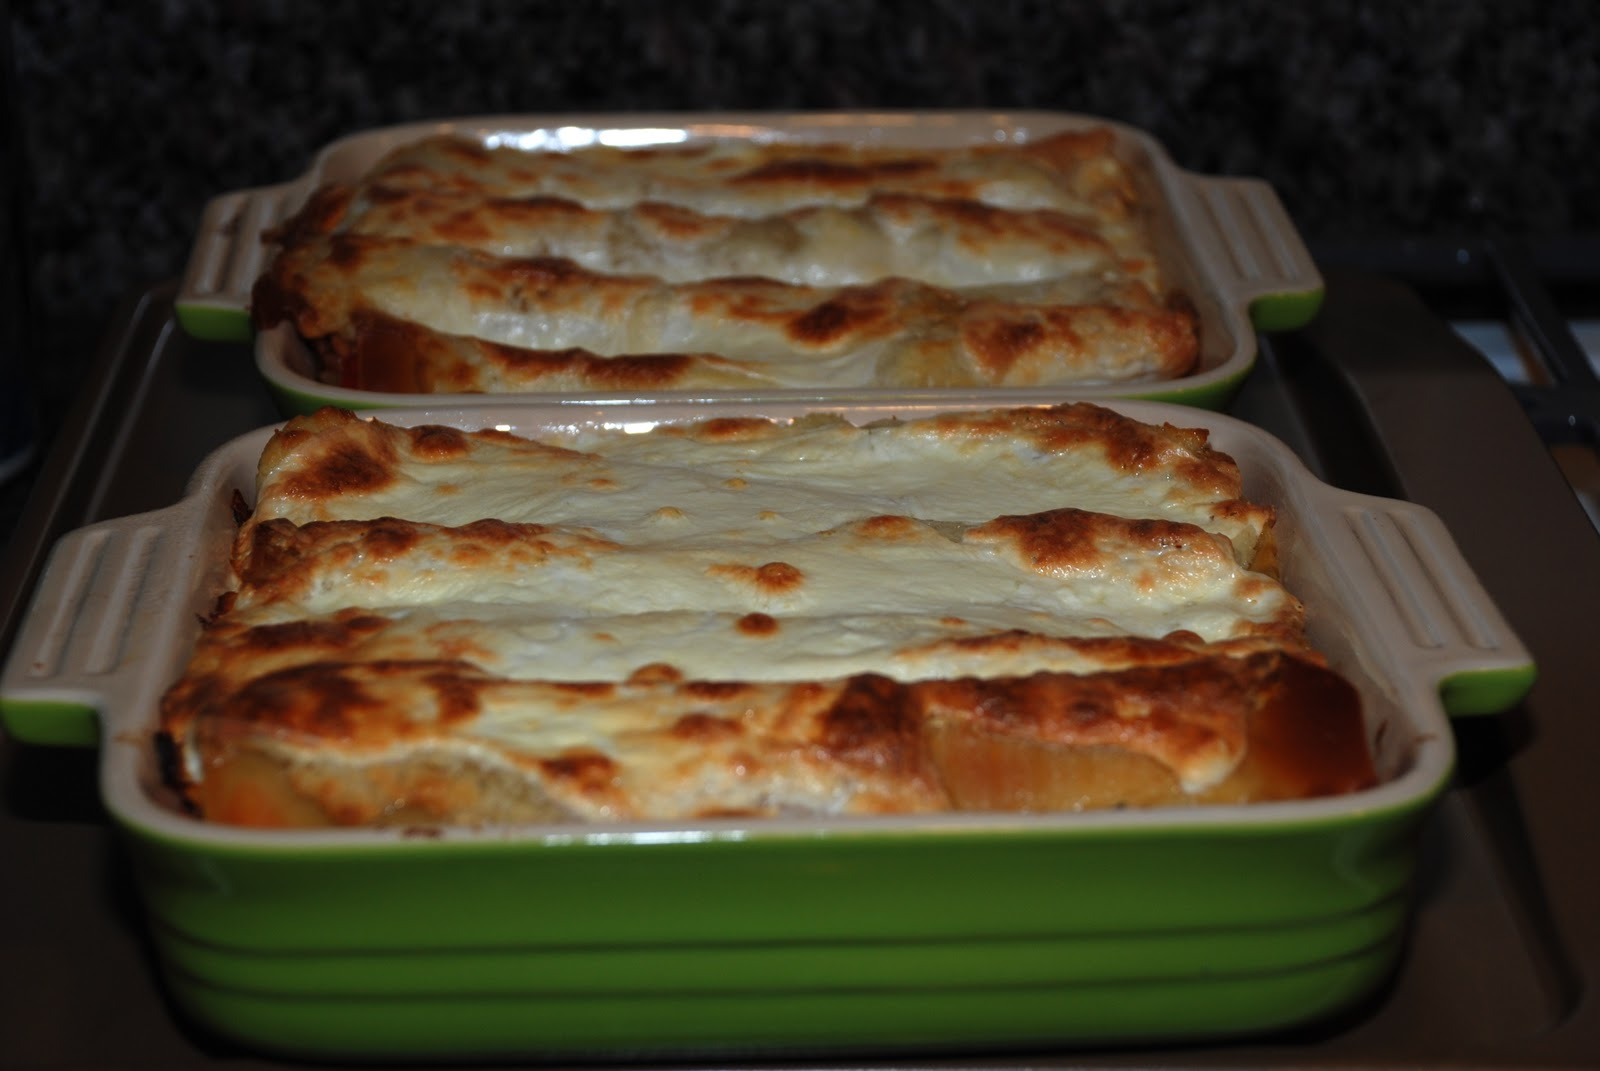 Chicken Lasagna with Roasted Red Pepper and Goat Cheese Lasagna